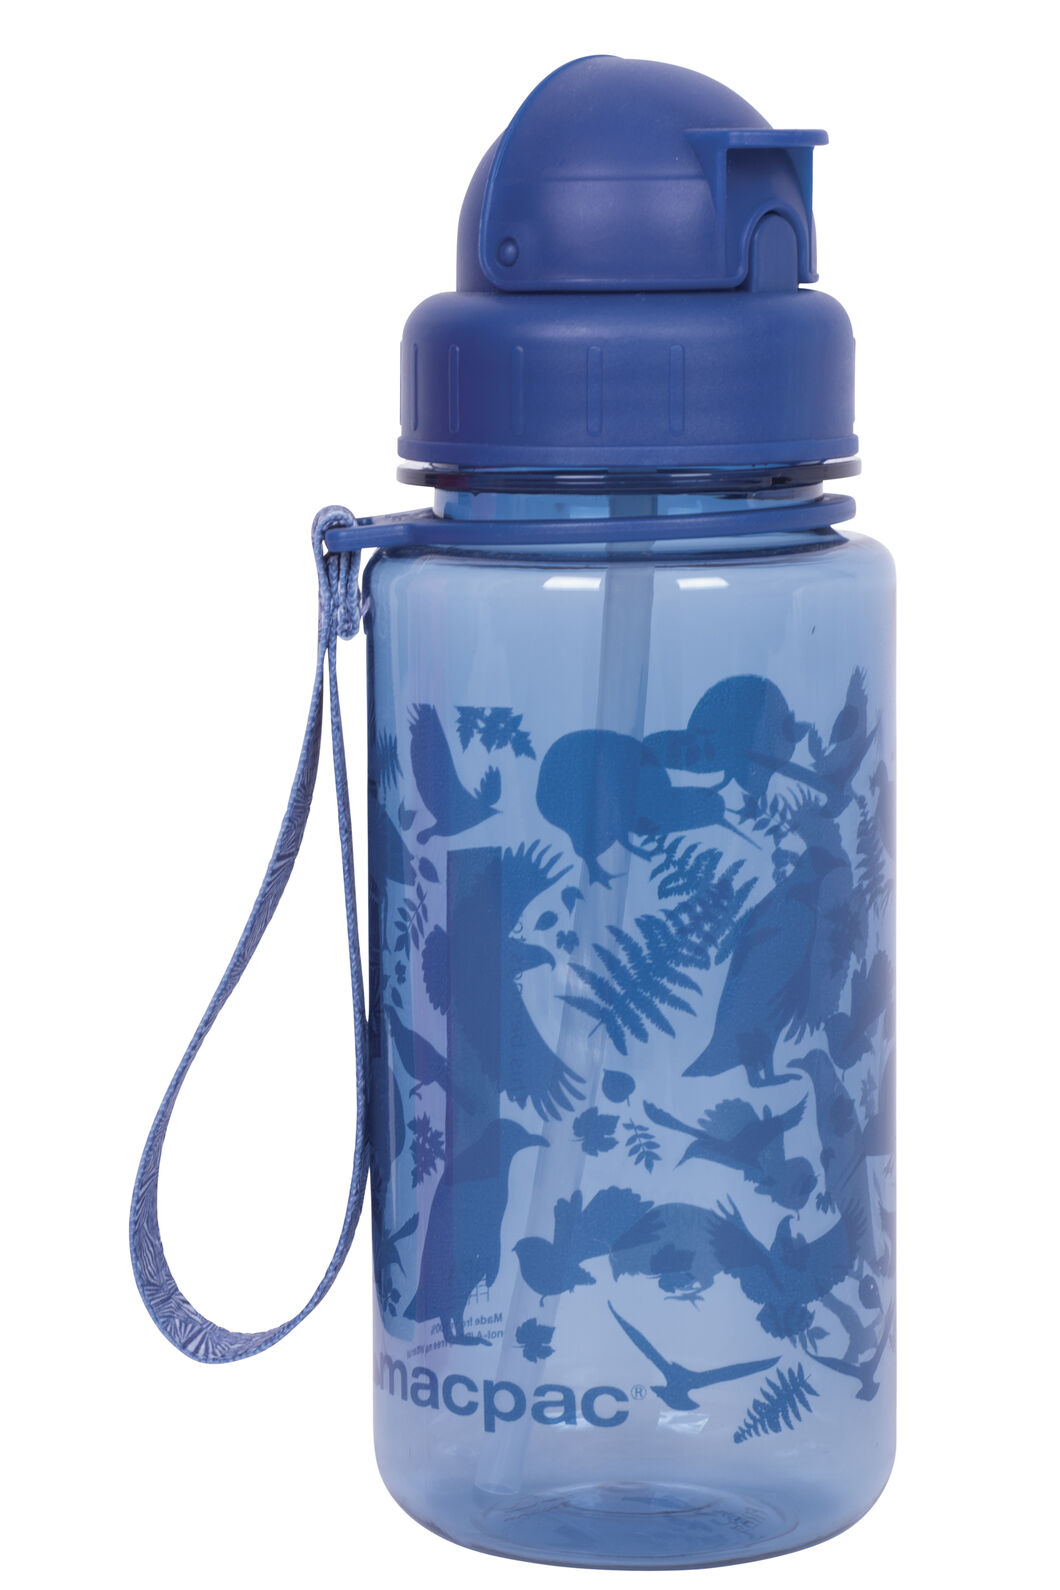 Macpac Kids' Drink Bottle — 400 ml, Bluebird, hi-res